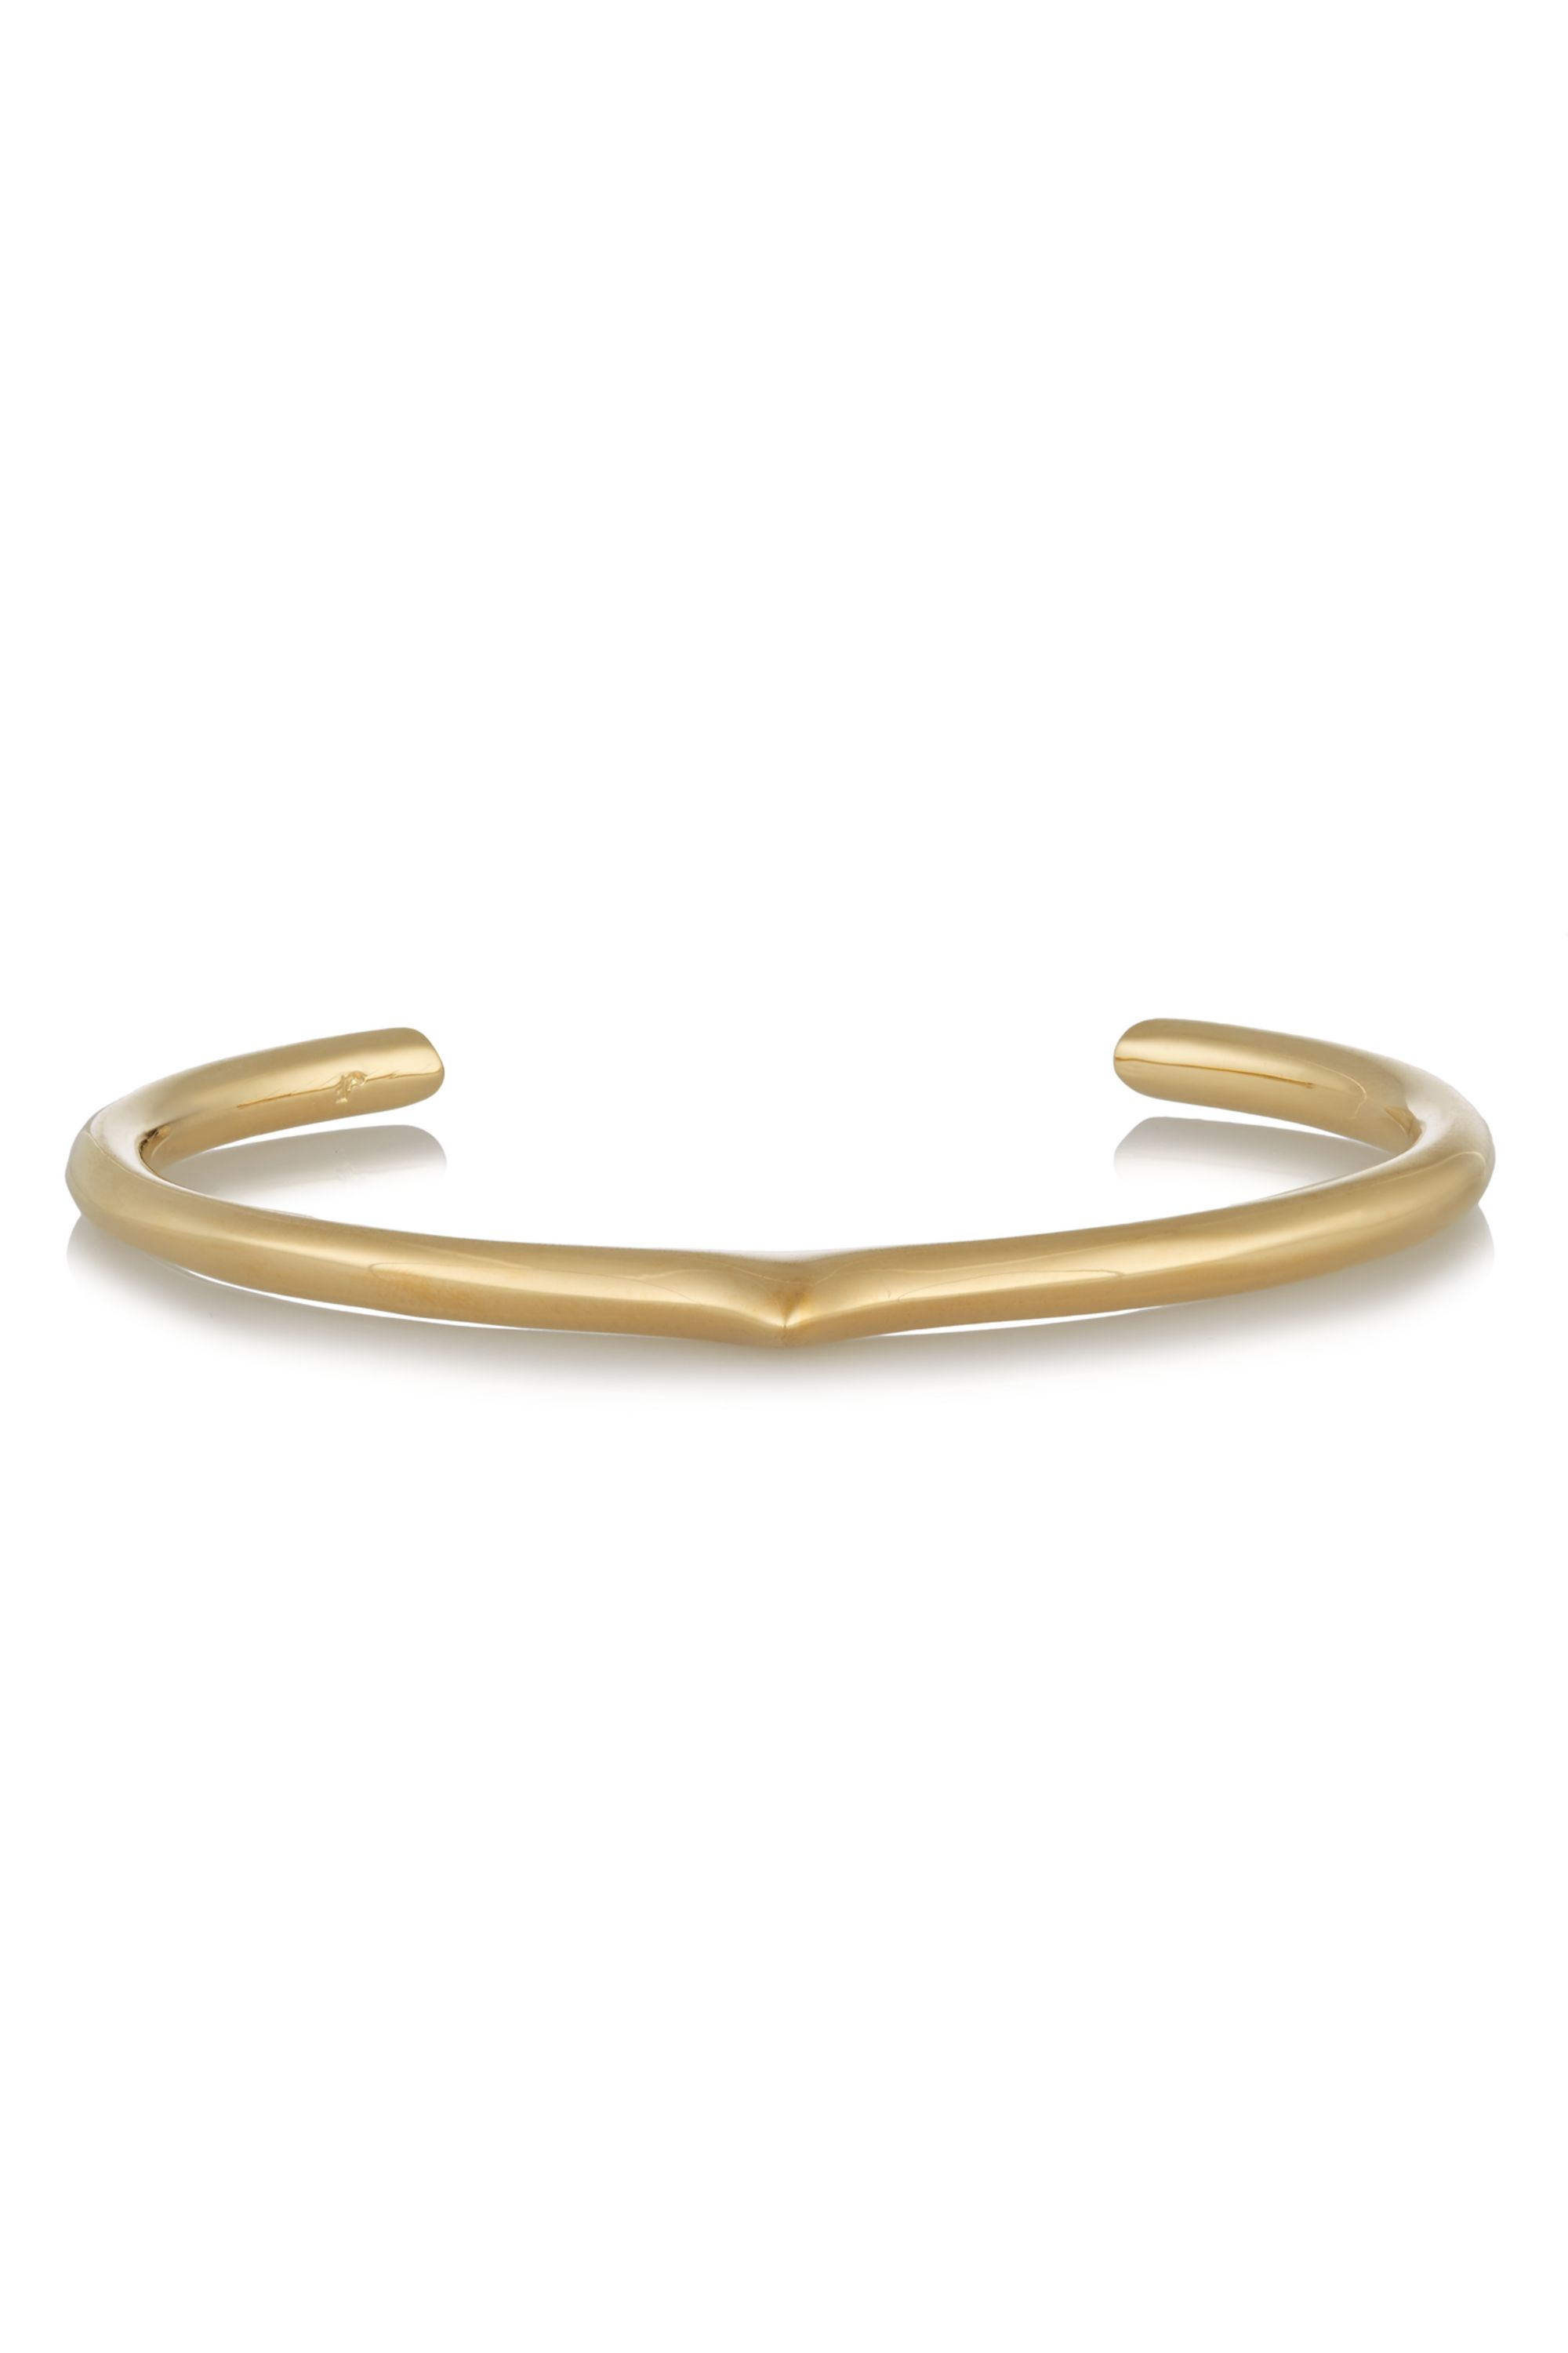 Jennifer Fisher Peak gold-plated cuff